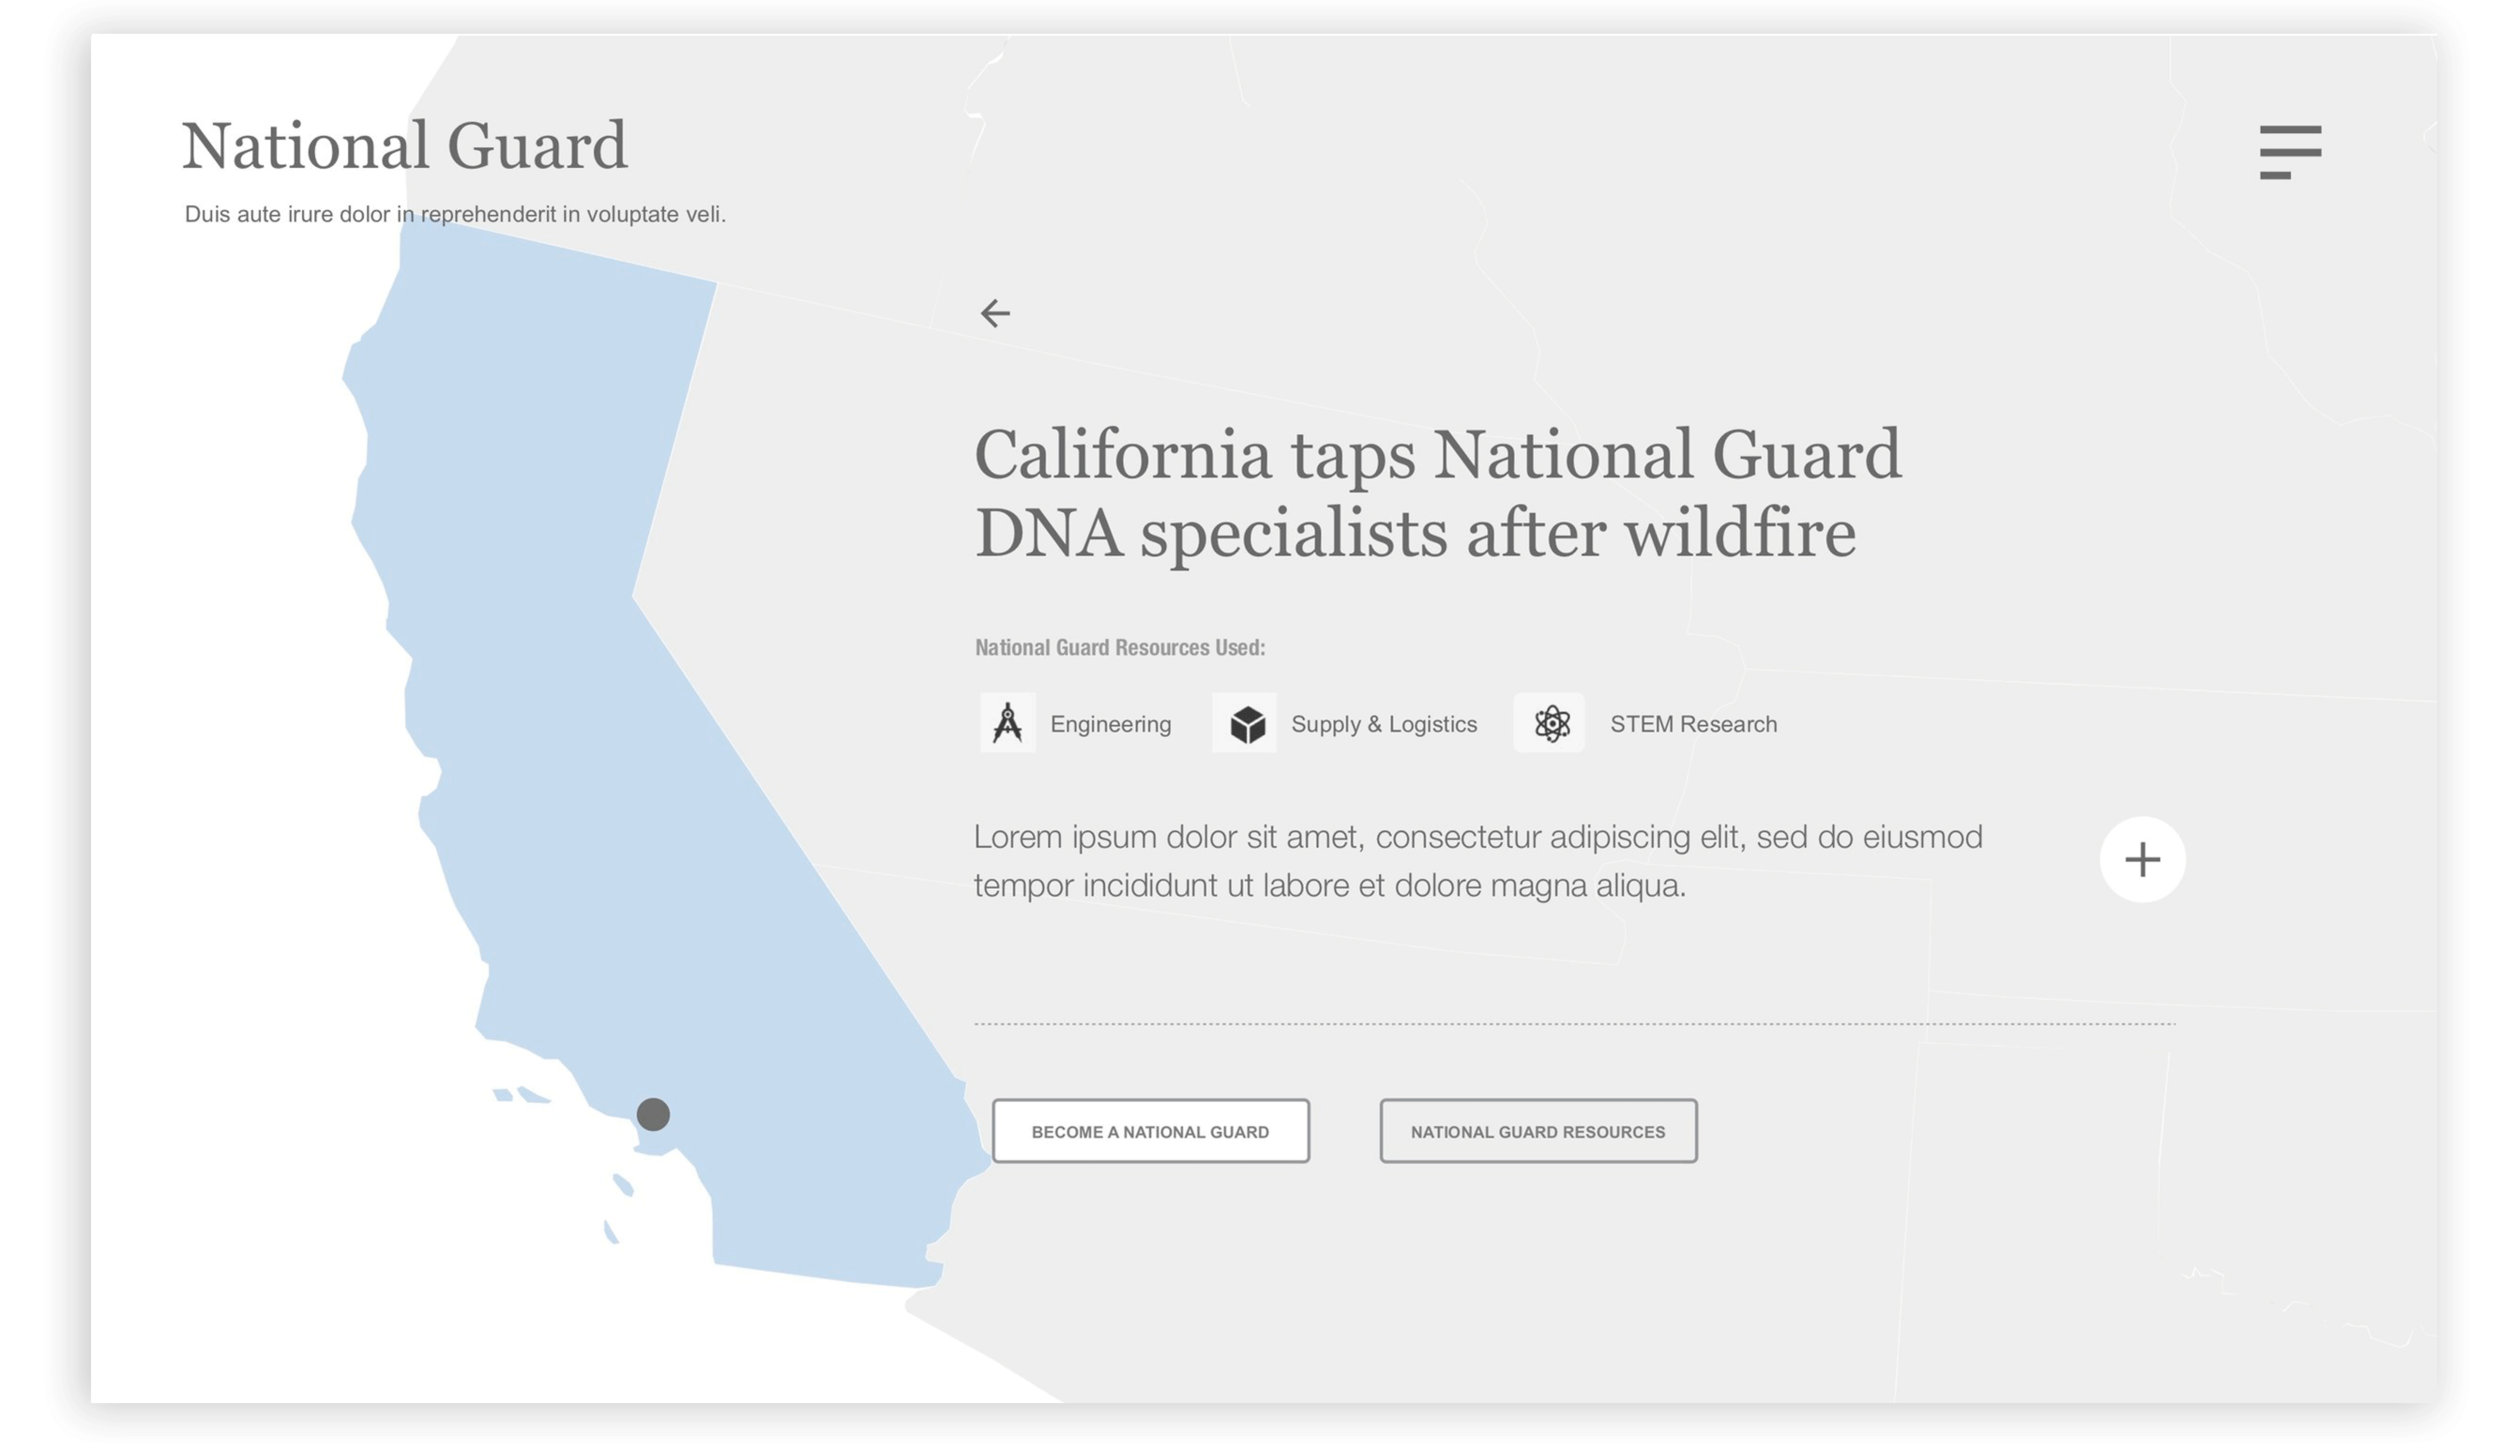 US_ARMY-NationGuard-wireframes6.png